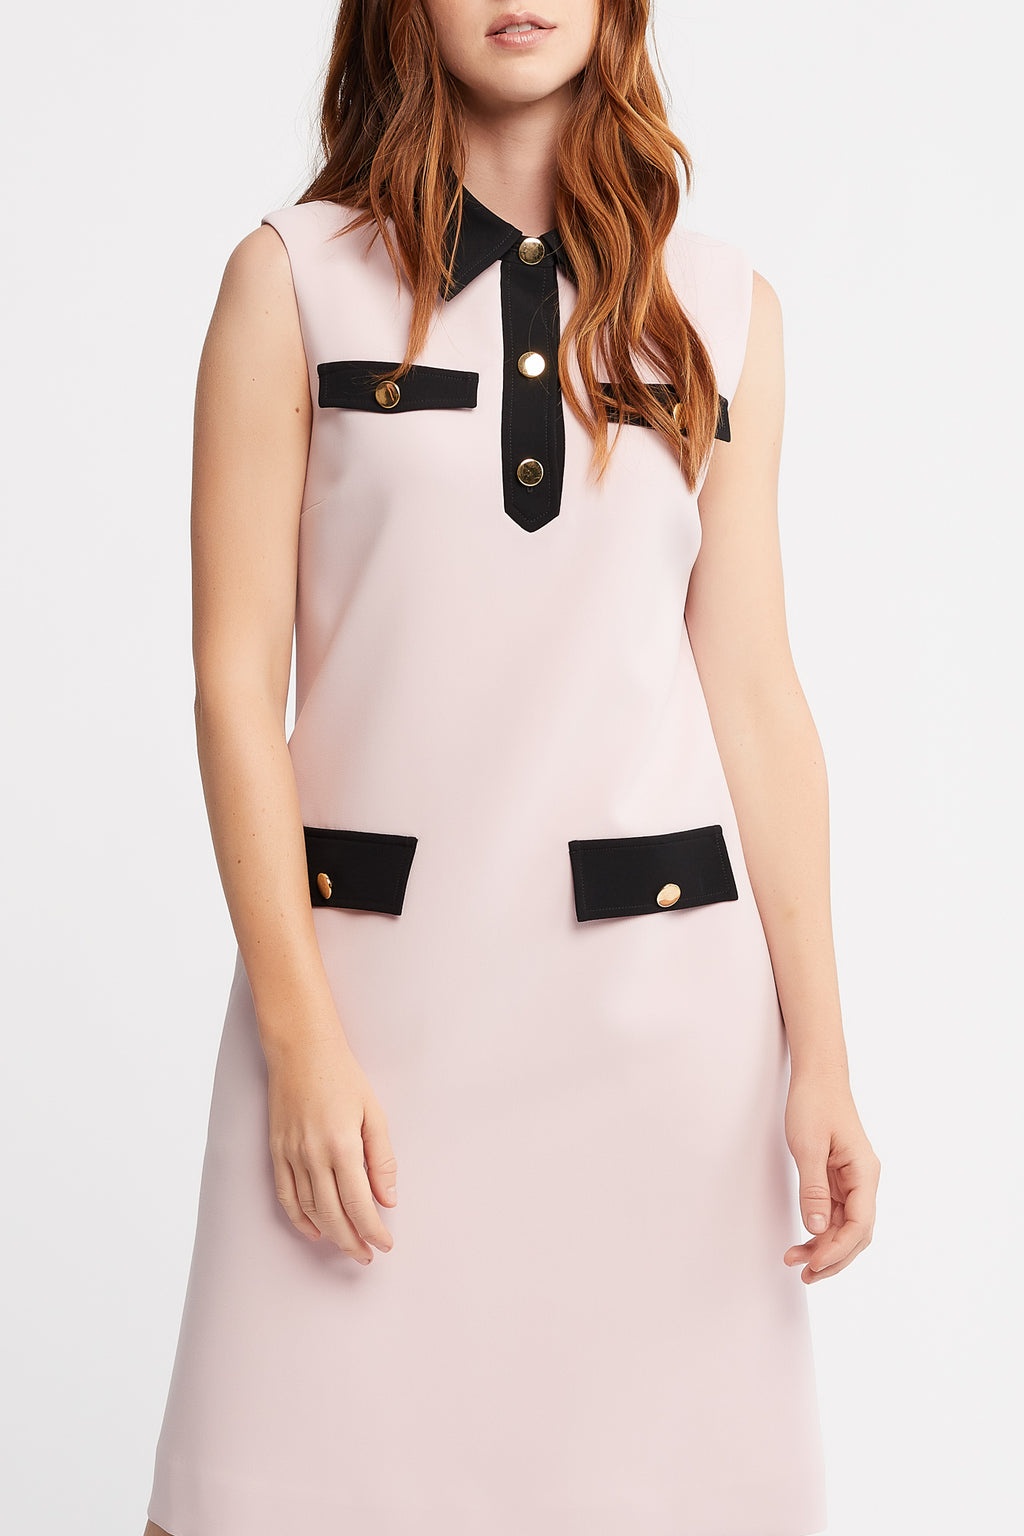 Tia Sleeveless A-line Work Dress in Baby Pink with Collar